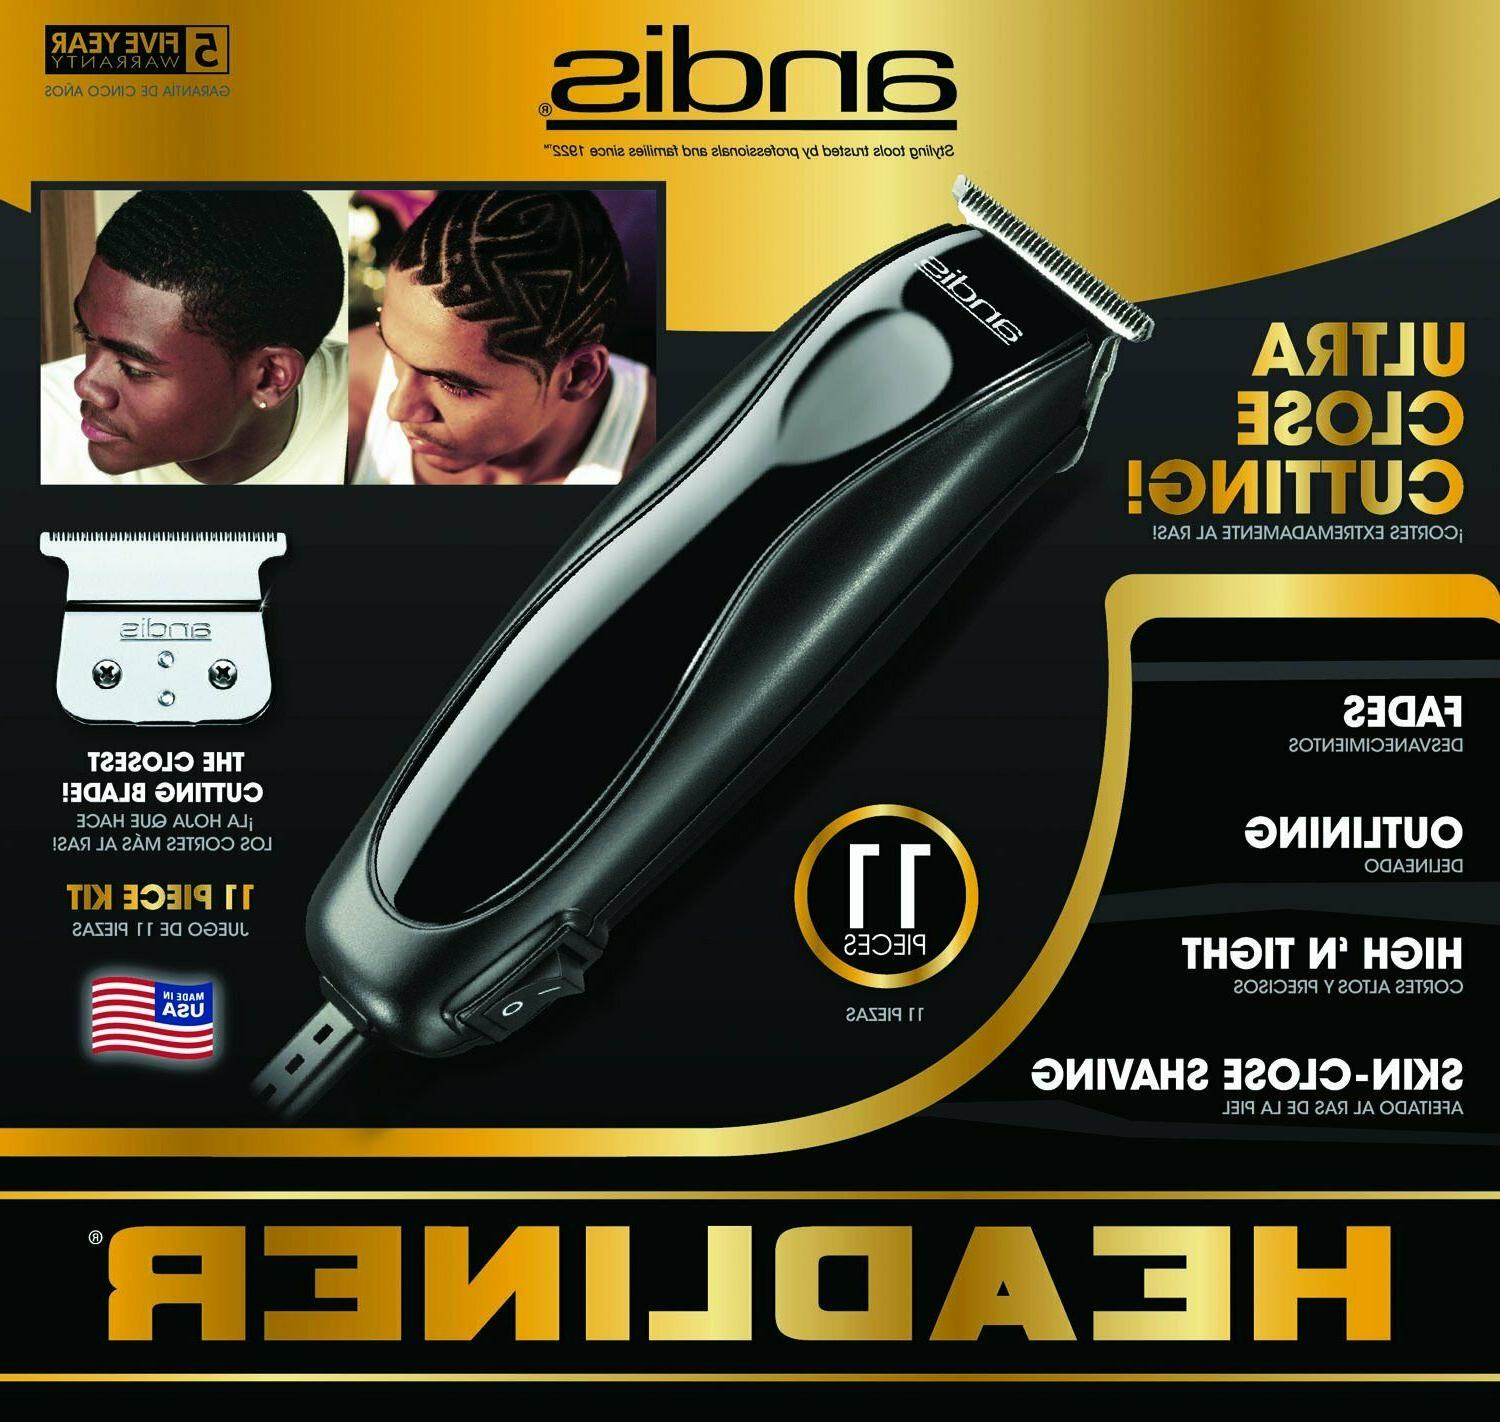 Andis Professional Trimmer Barber Cut Clippers Grooming